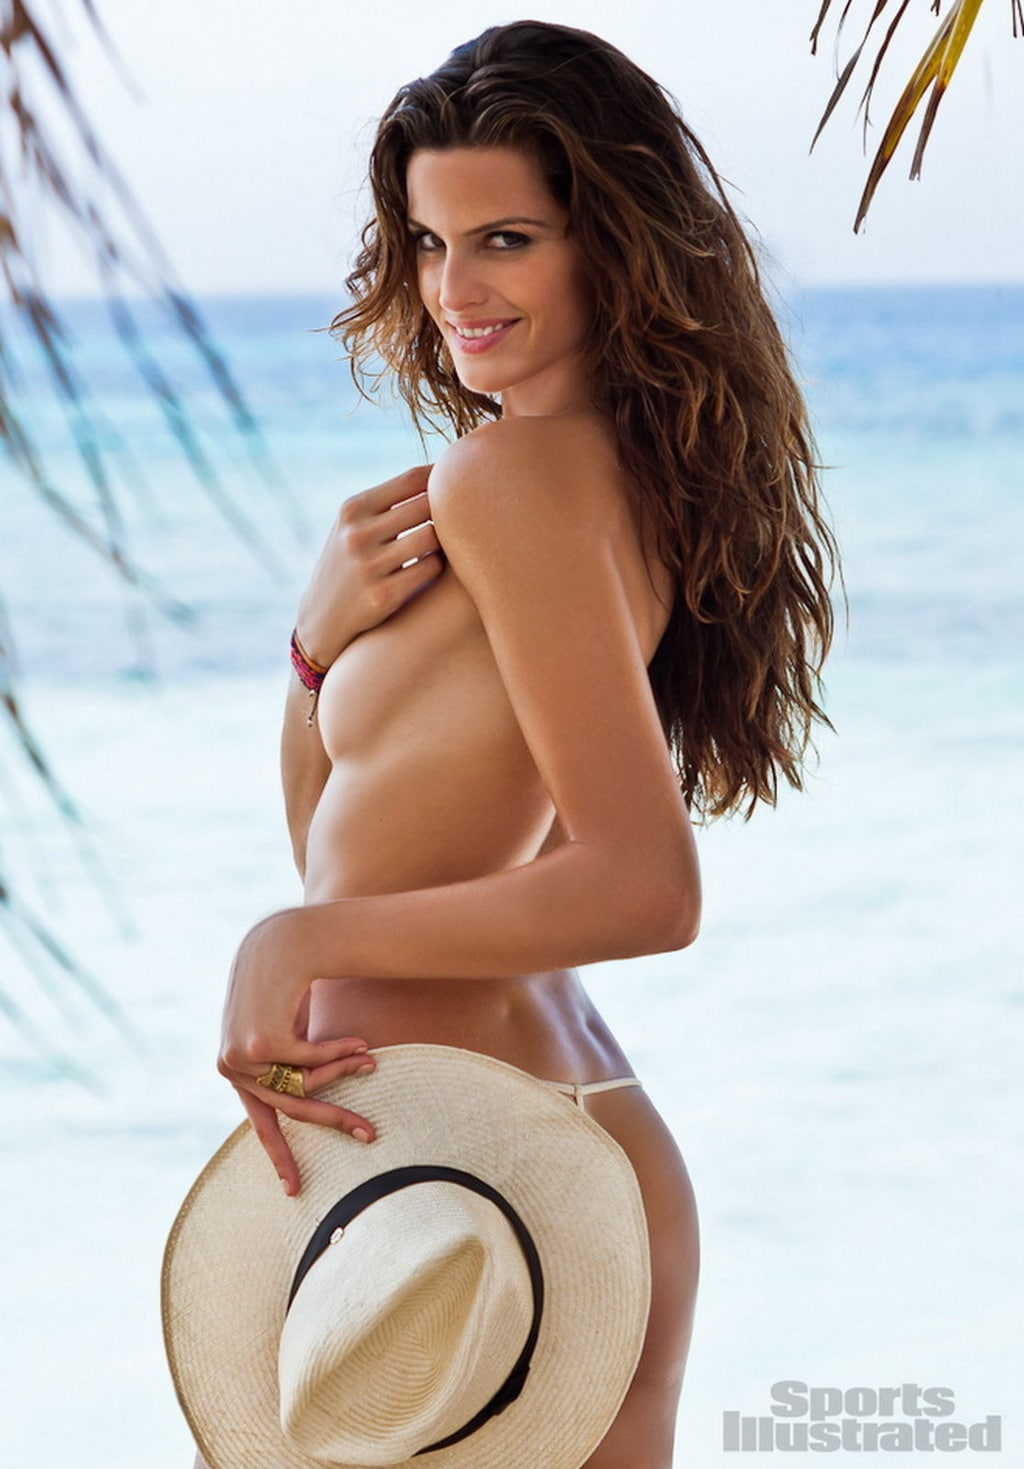 Izabel Goulart topless with a hat on the beach